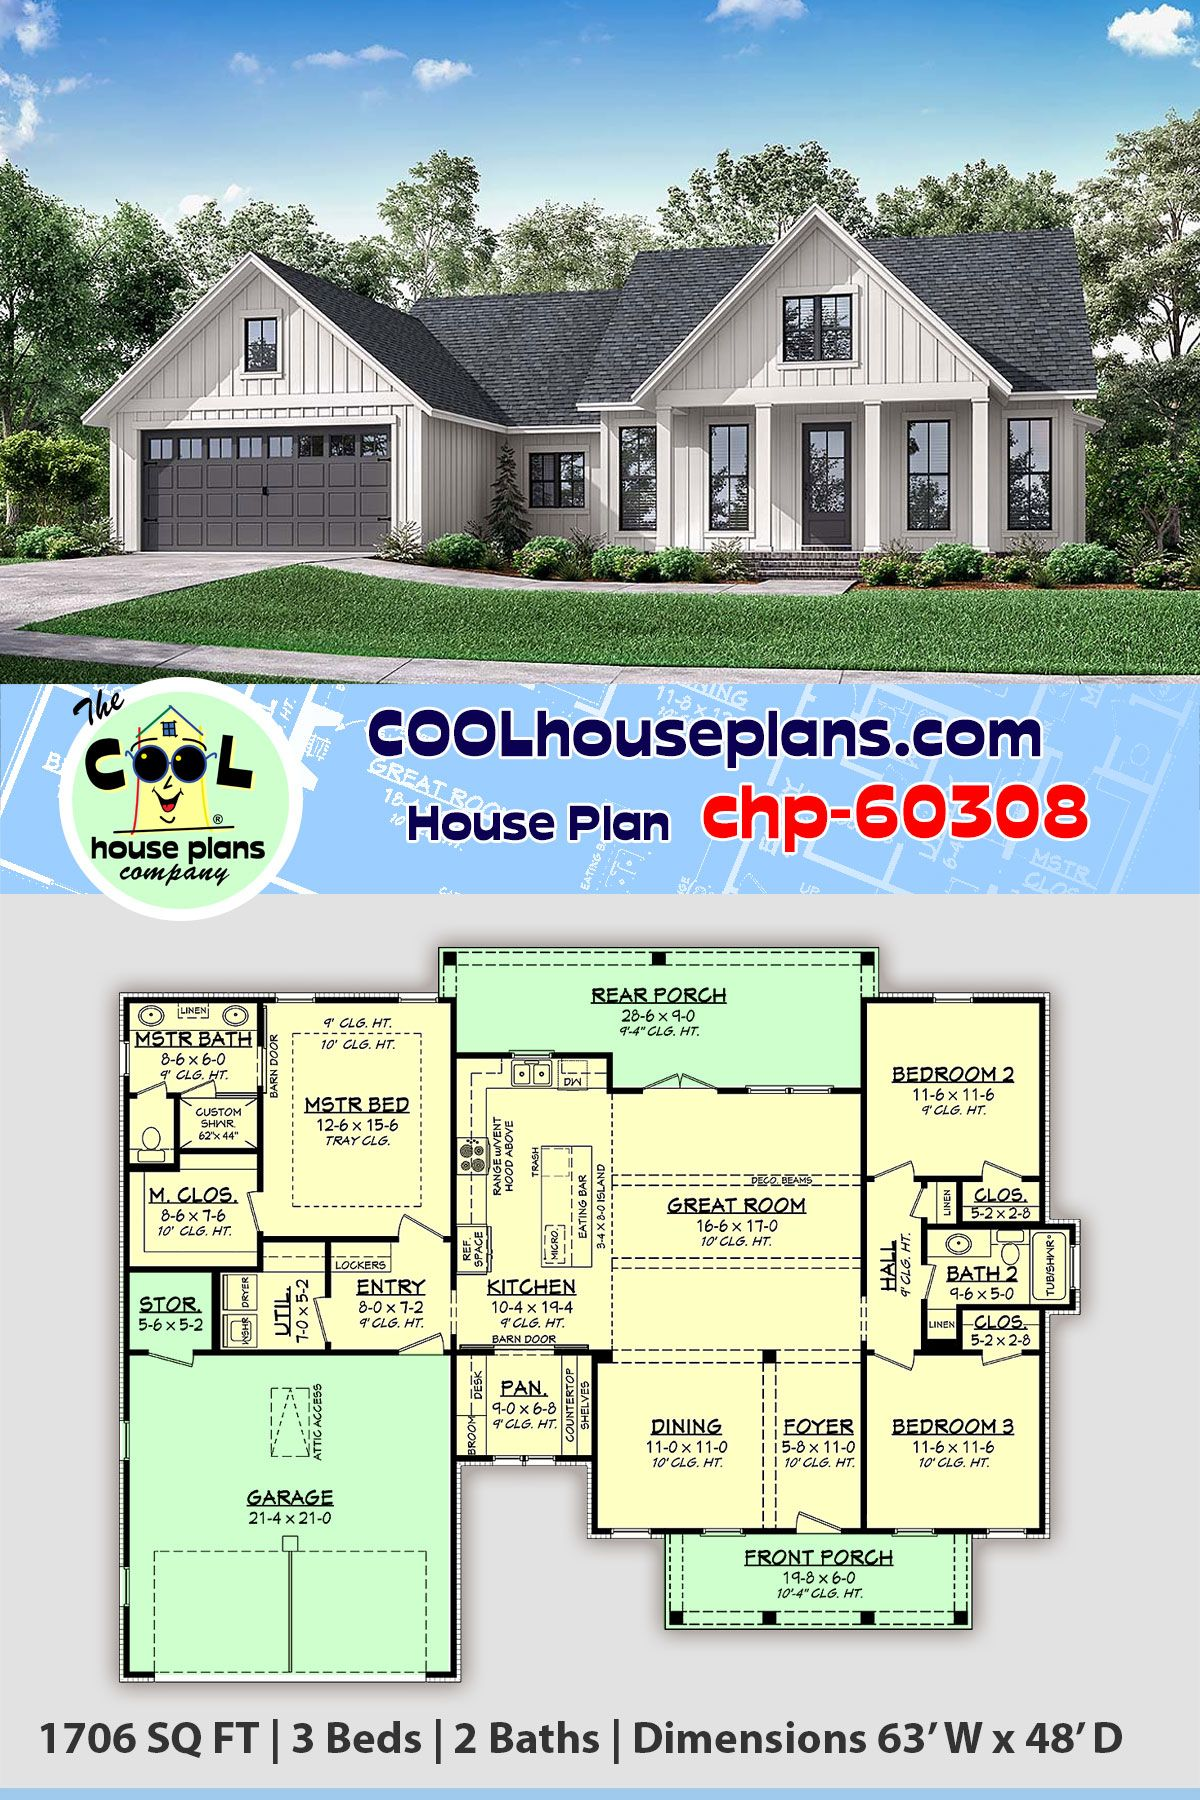 Traditional Style House Plan 56715 With 3 Bed 2 Bath 2 Car Garage In 2020 Craftsman House Plans Country House Plans House Plans Farmhouse